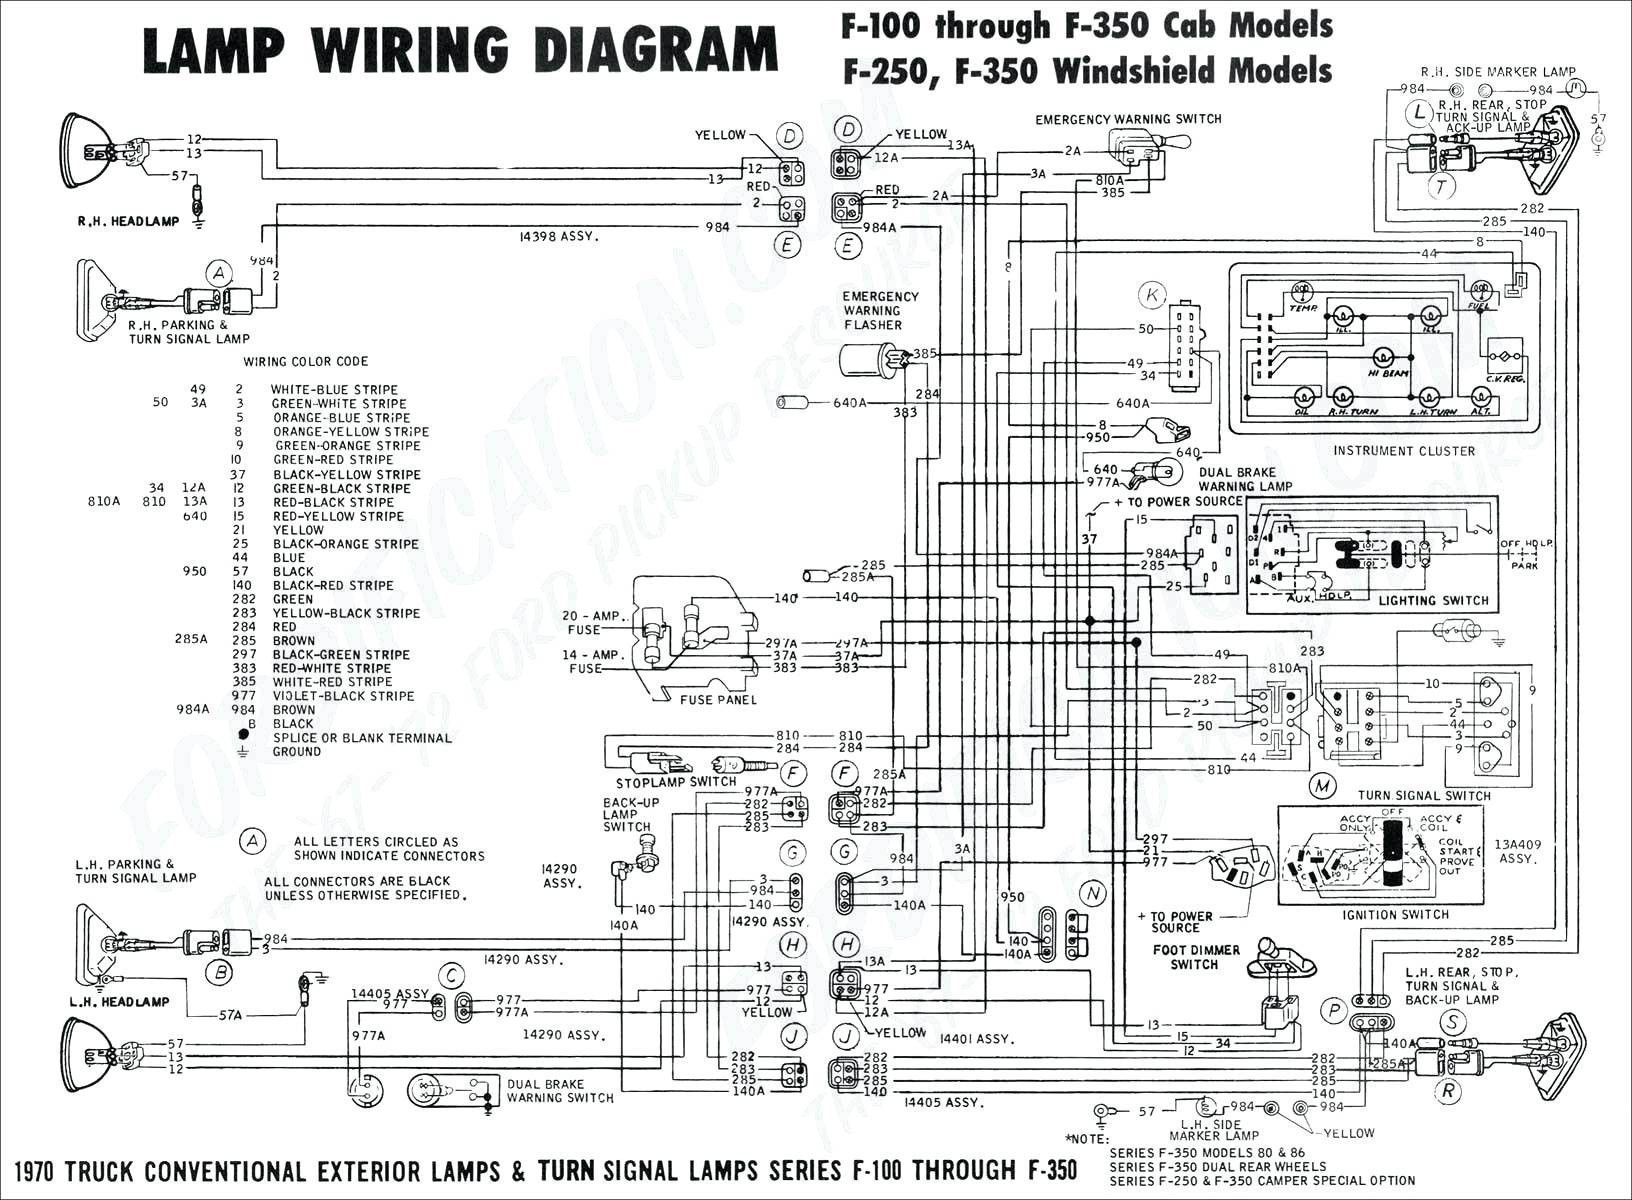 Suzuki Samurai Dome Light Wiring Diagram Bo 2633] 1986 Chevy Truck Wiring Diagram Furthermore Dodge Of Suzuki Samurai Dome Light Wiring Diagram